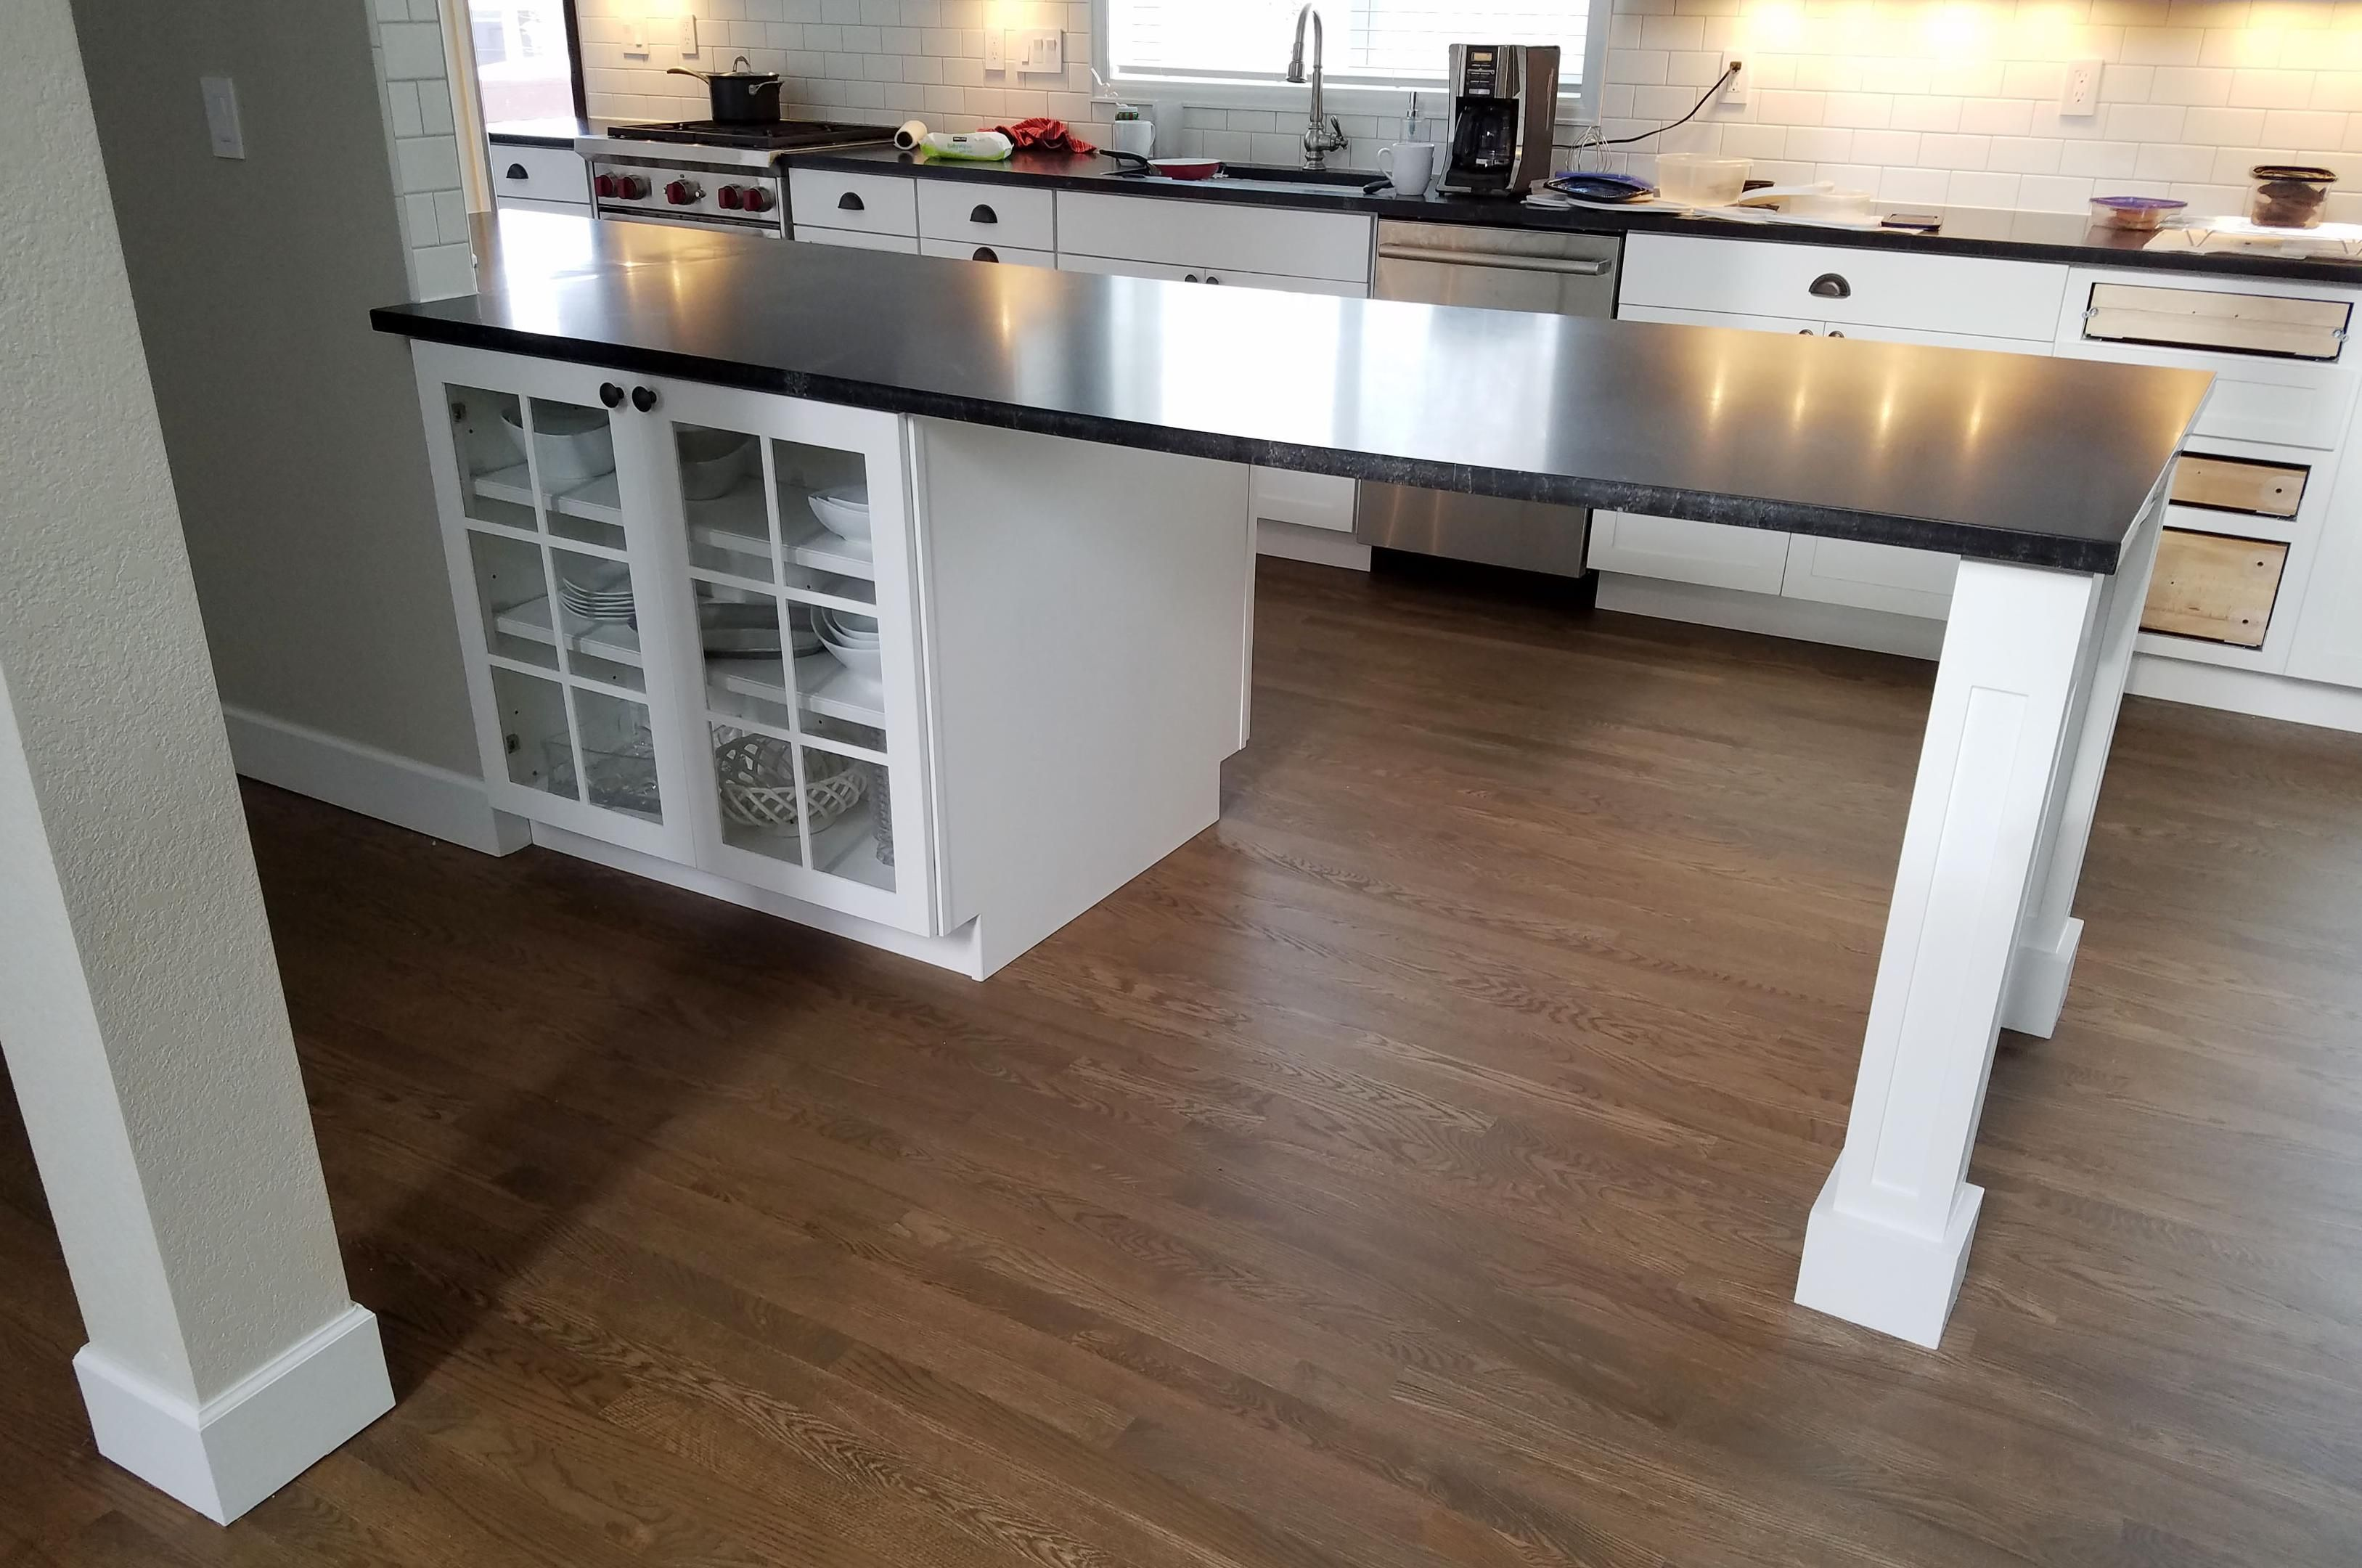 Pin By Cathy On Kitchen Ideas And Decor Countertops Granite Countertops Hardwood Floors In Kitchen